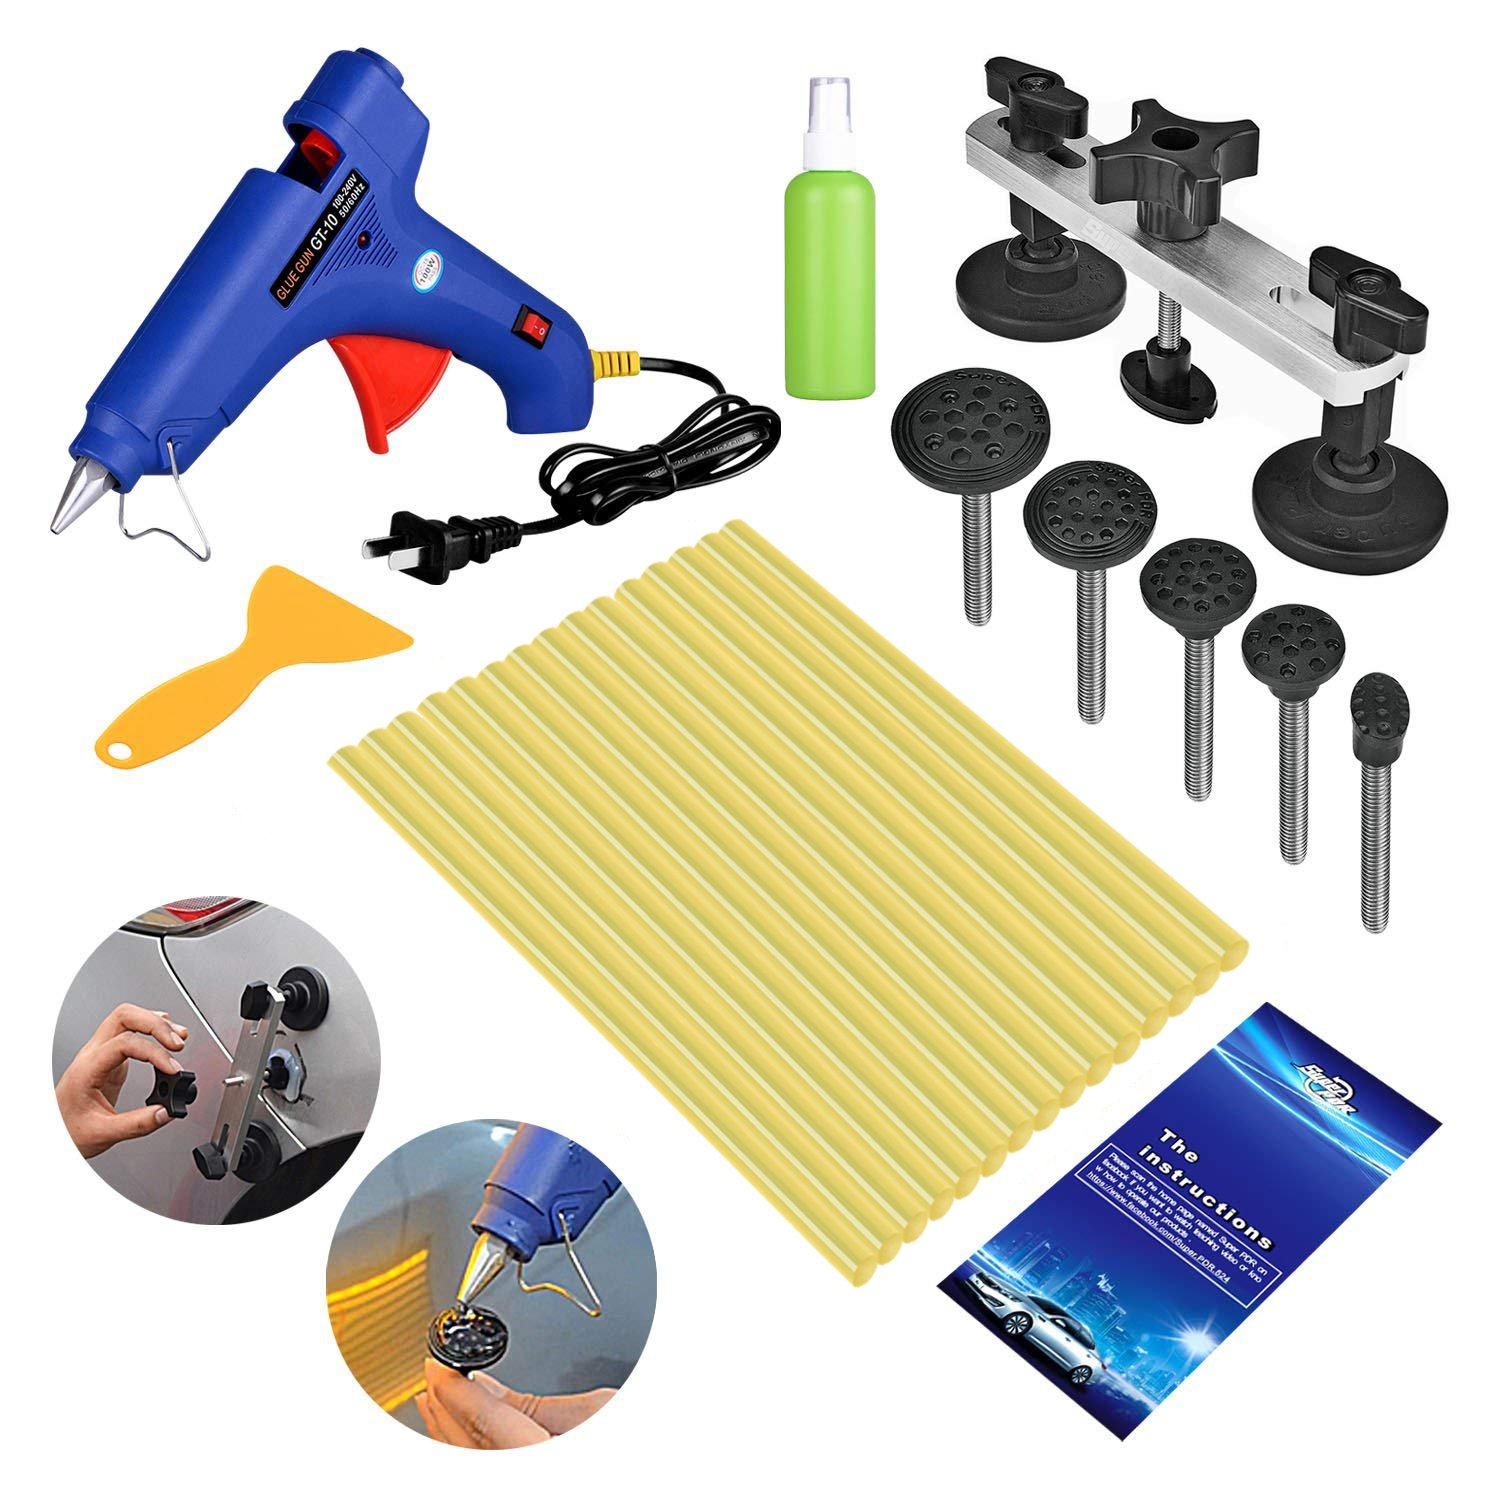 FLY5D 19Pcs Auoto Body Paintless Dent Removal Repair Tool Kits Bridge Puller Tool Kits